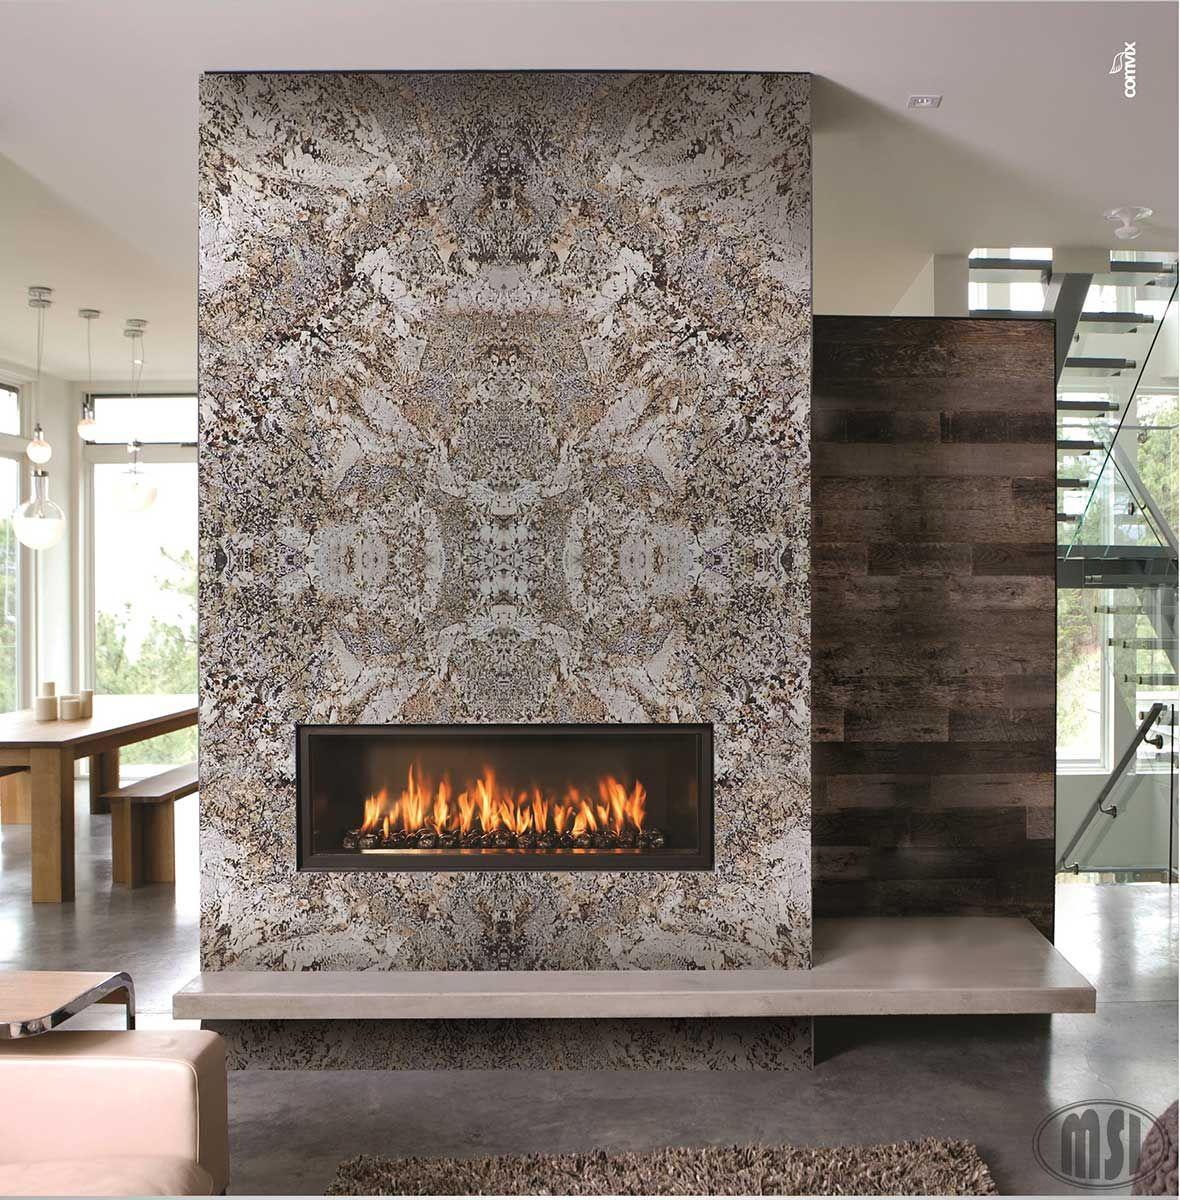 this fireplace design with bookmatch slabs simply amazing